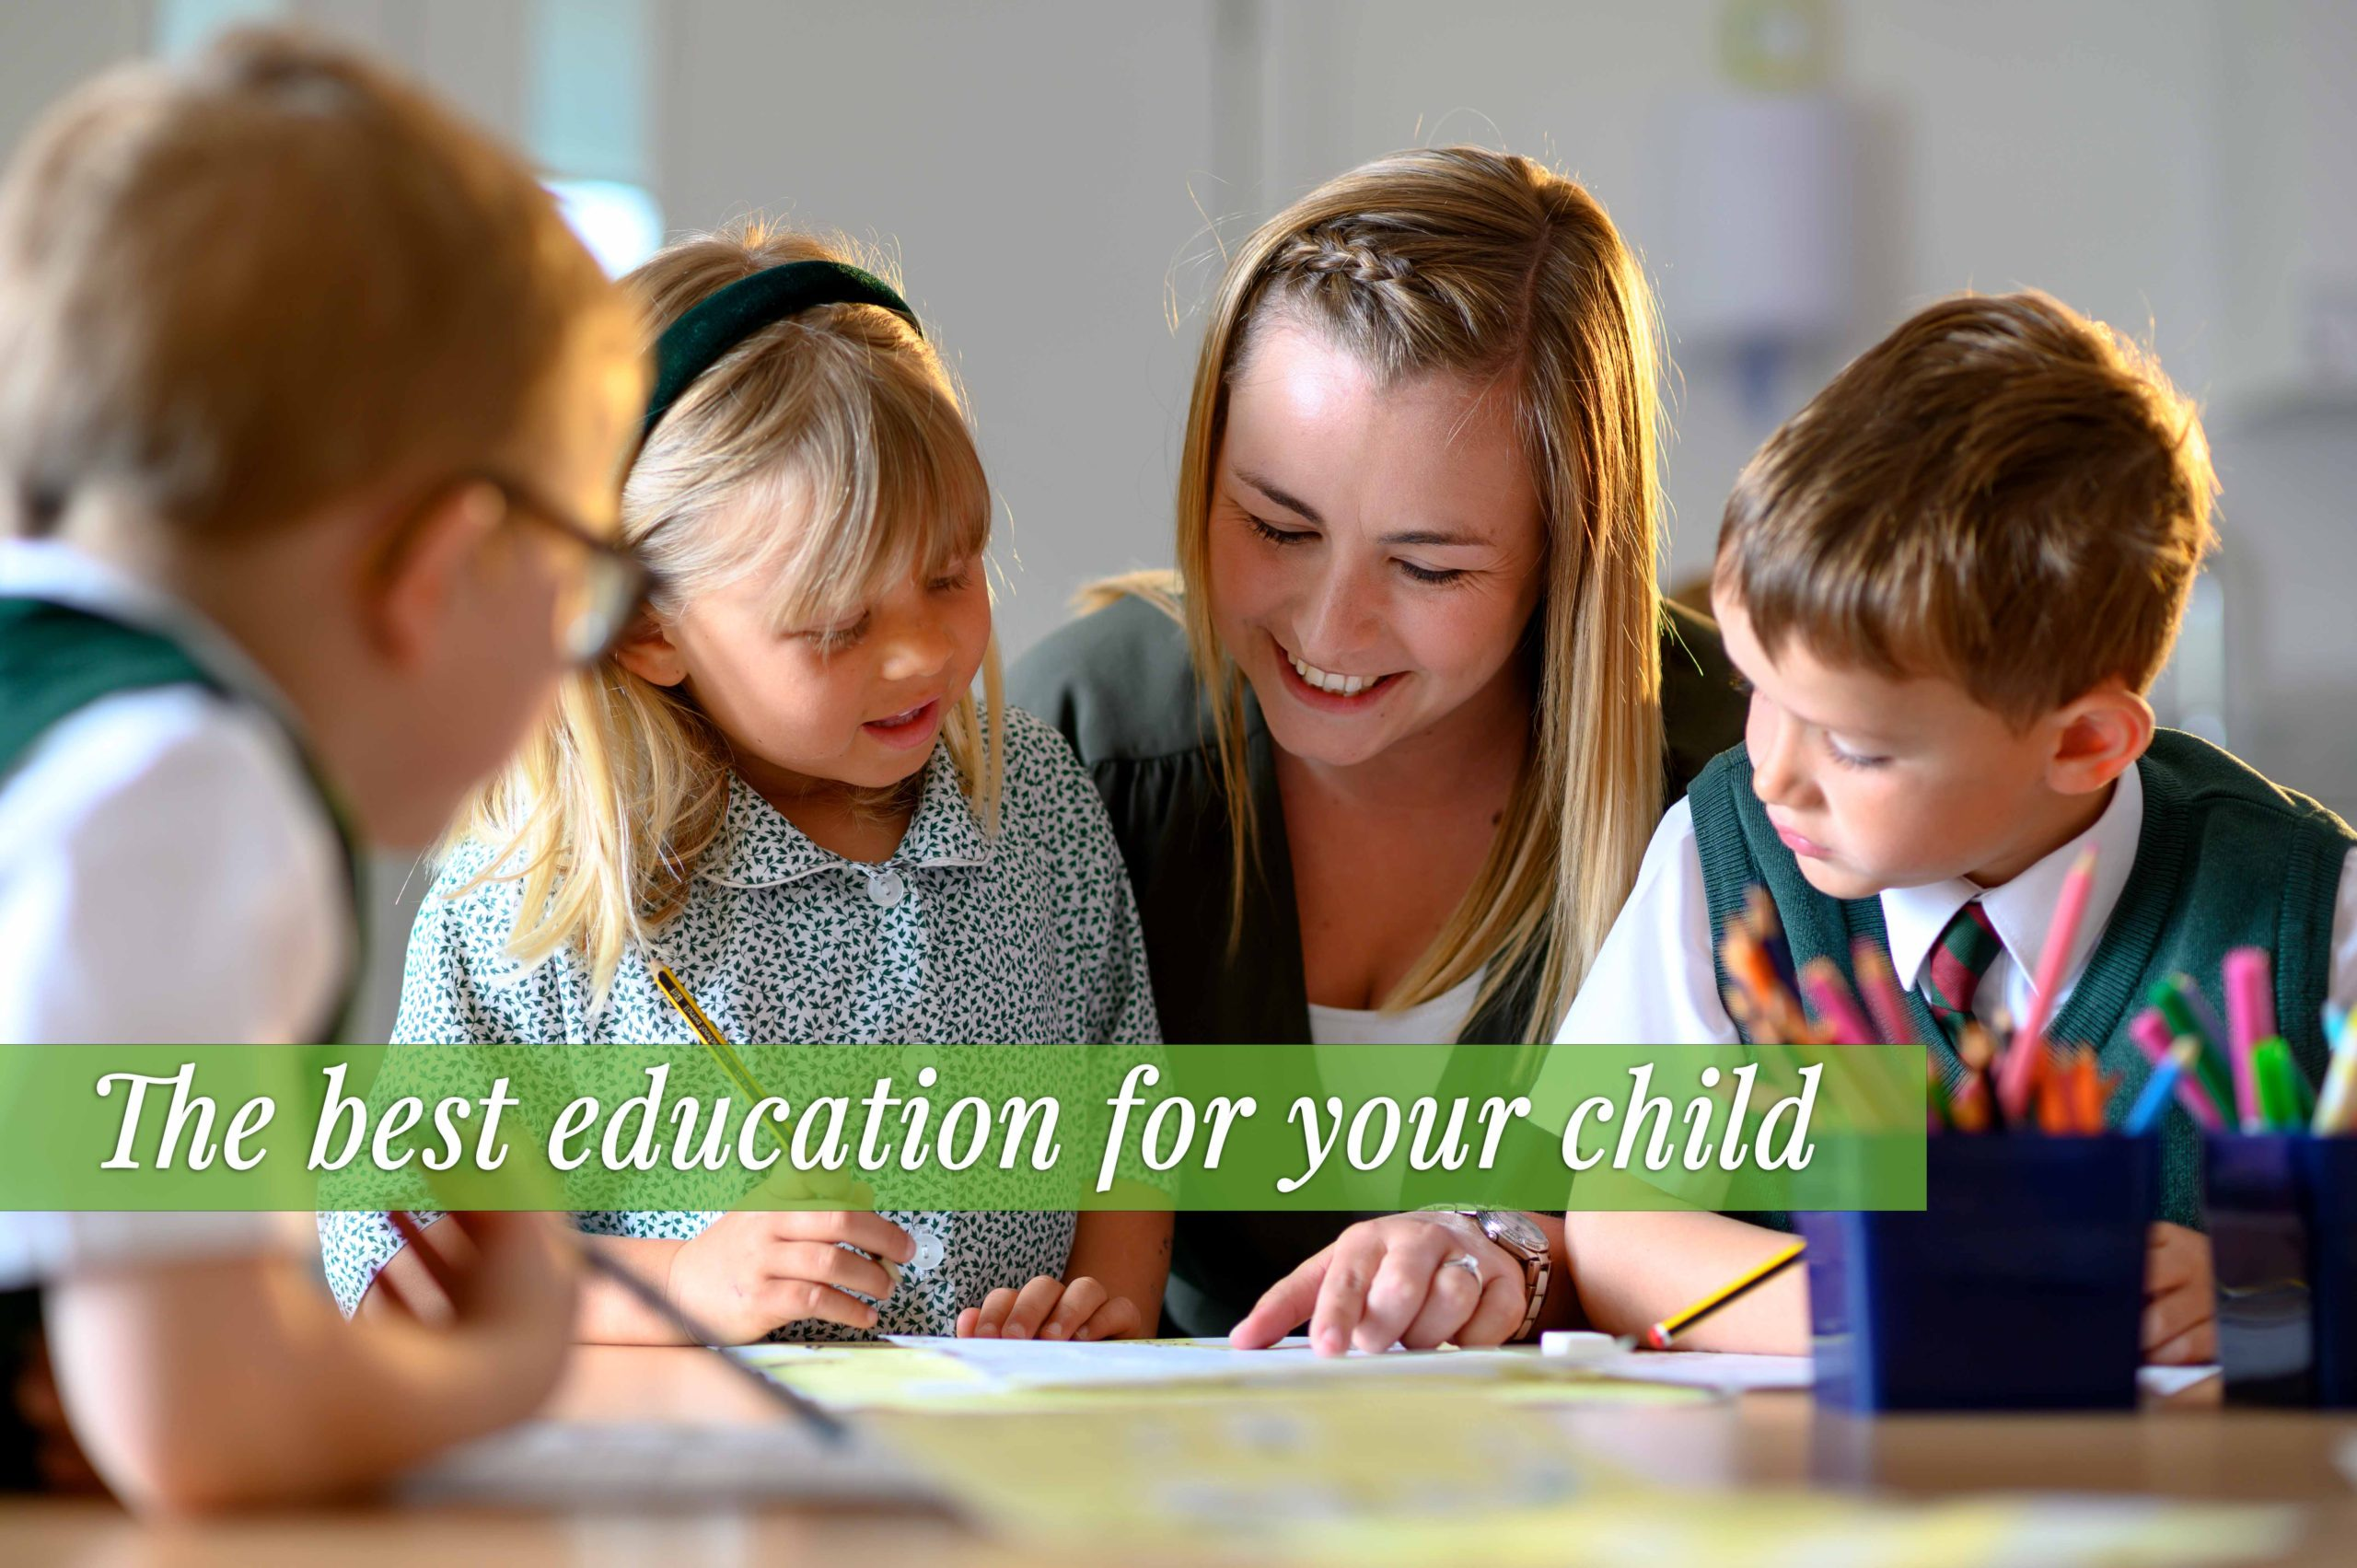 Come And See Us At Yarrells: The Best Education For Your Child.